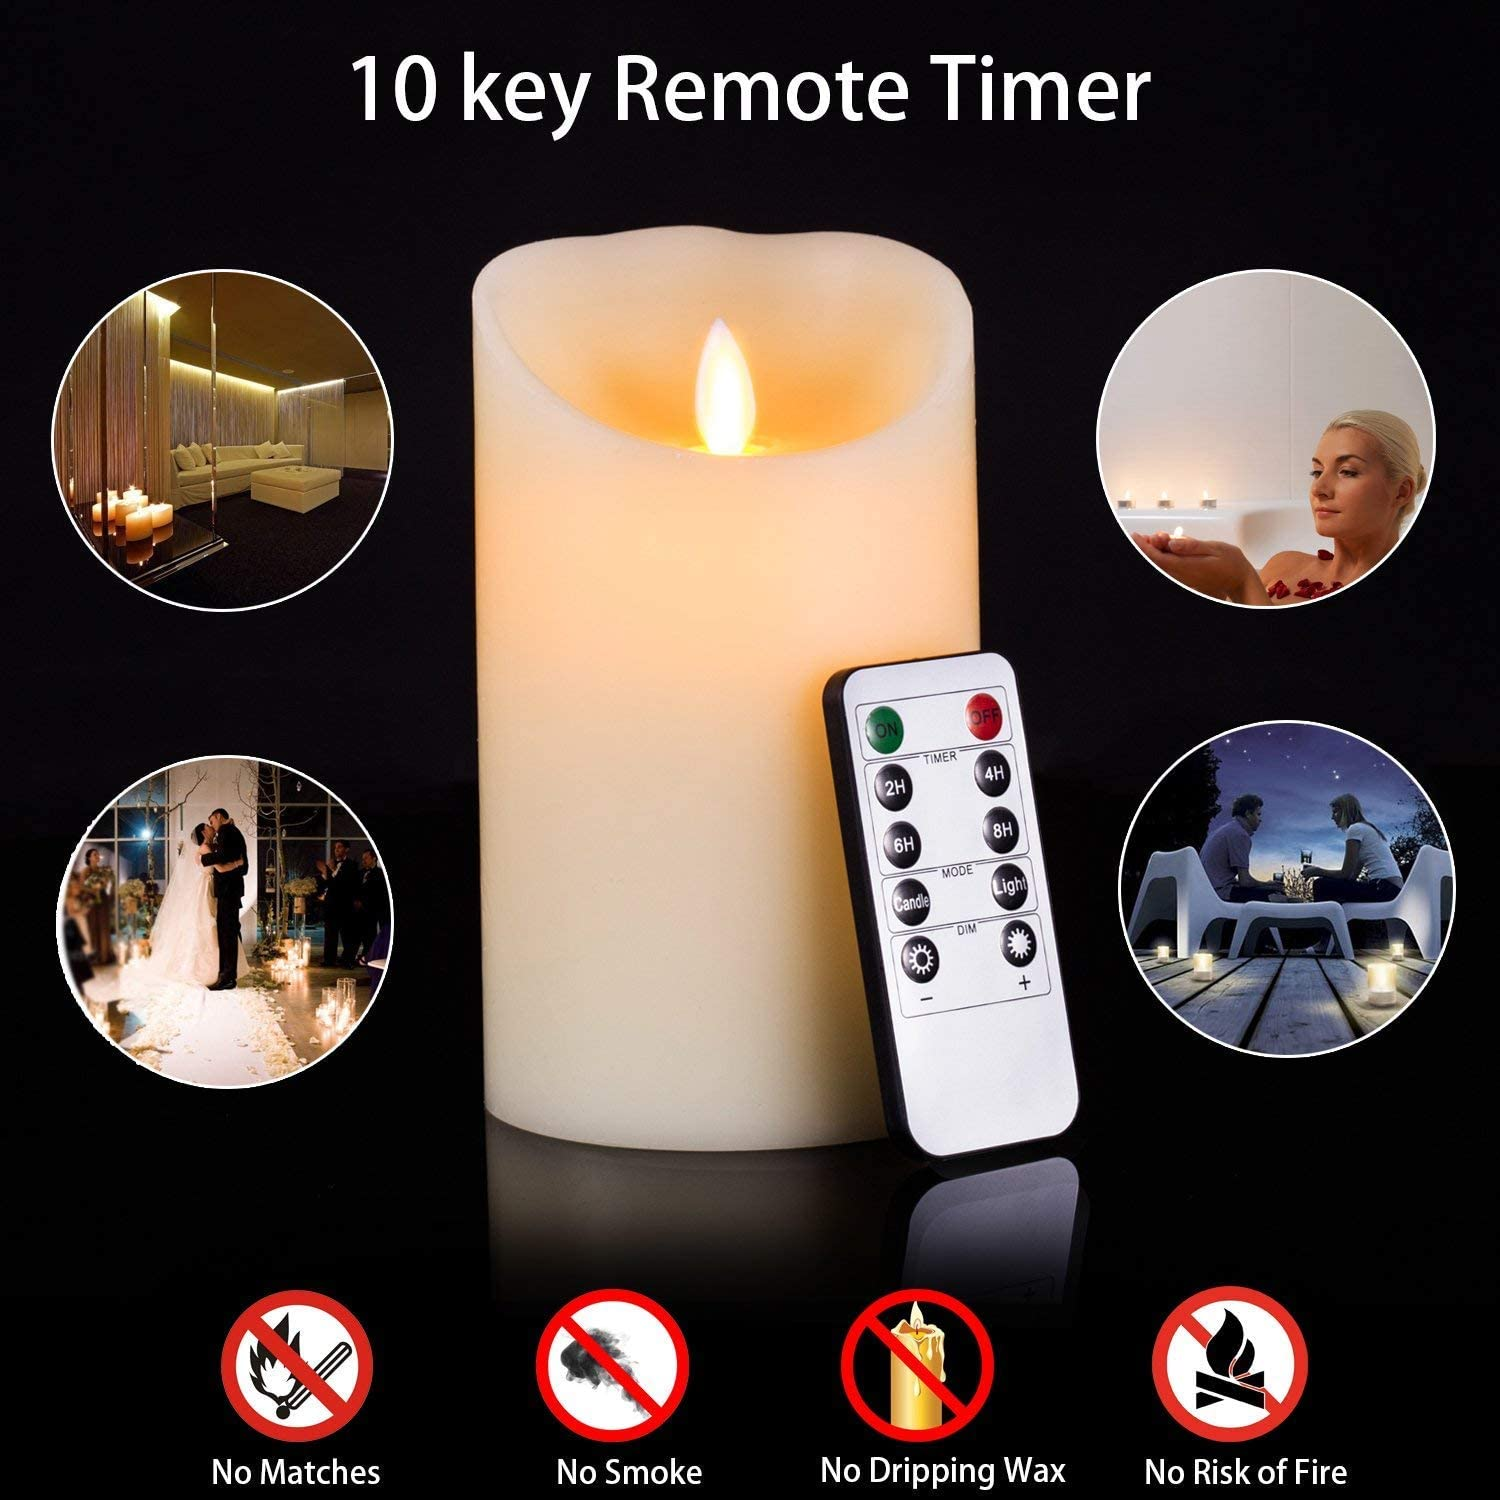 4 5 6 Pack of 3 Burgundy Aku Tonpa Flameless Candles Battery Operated Pillar Real Wax Flickering Moving Wick Electric LED Candle Gift Set with Remote Control Cycling 24 Hours Timer